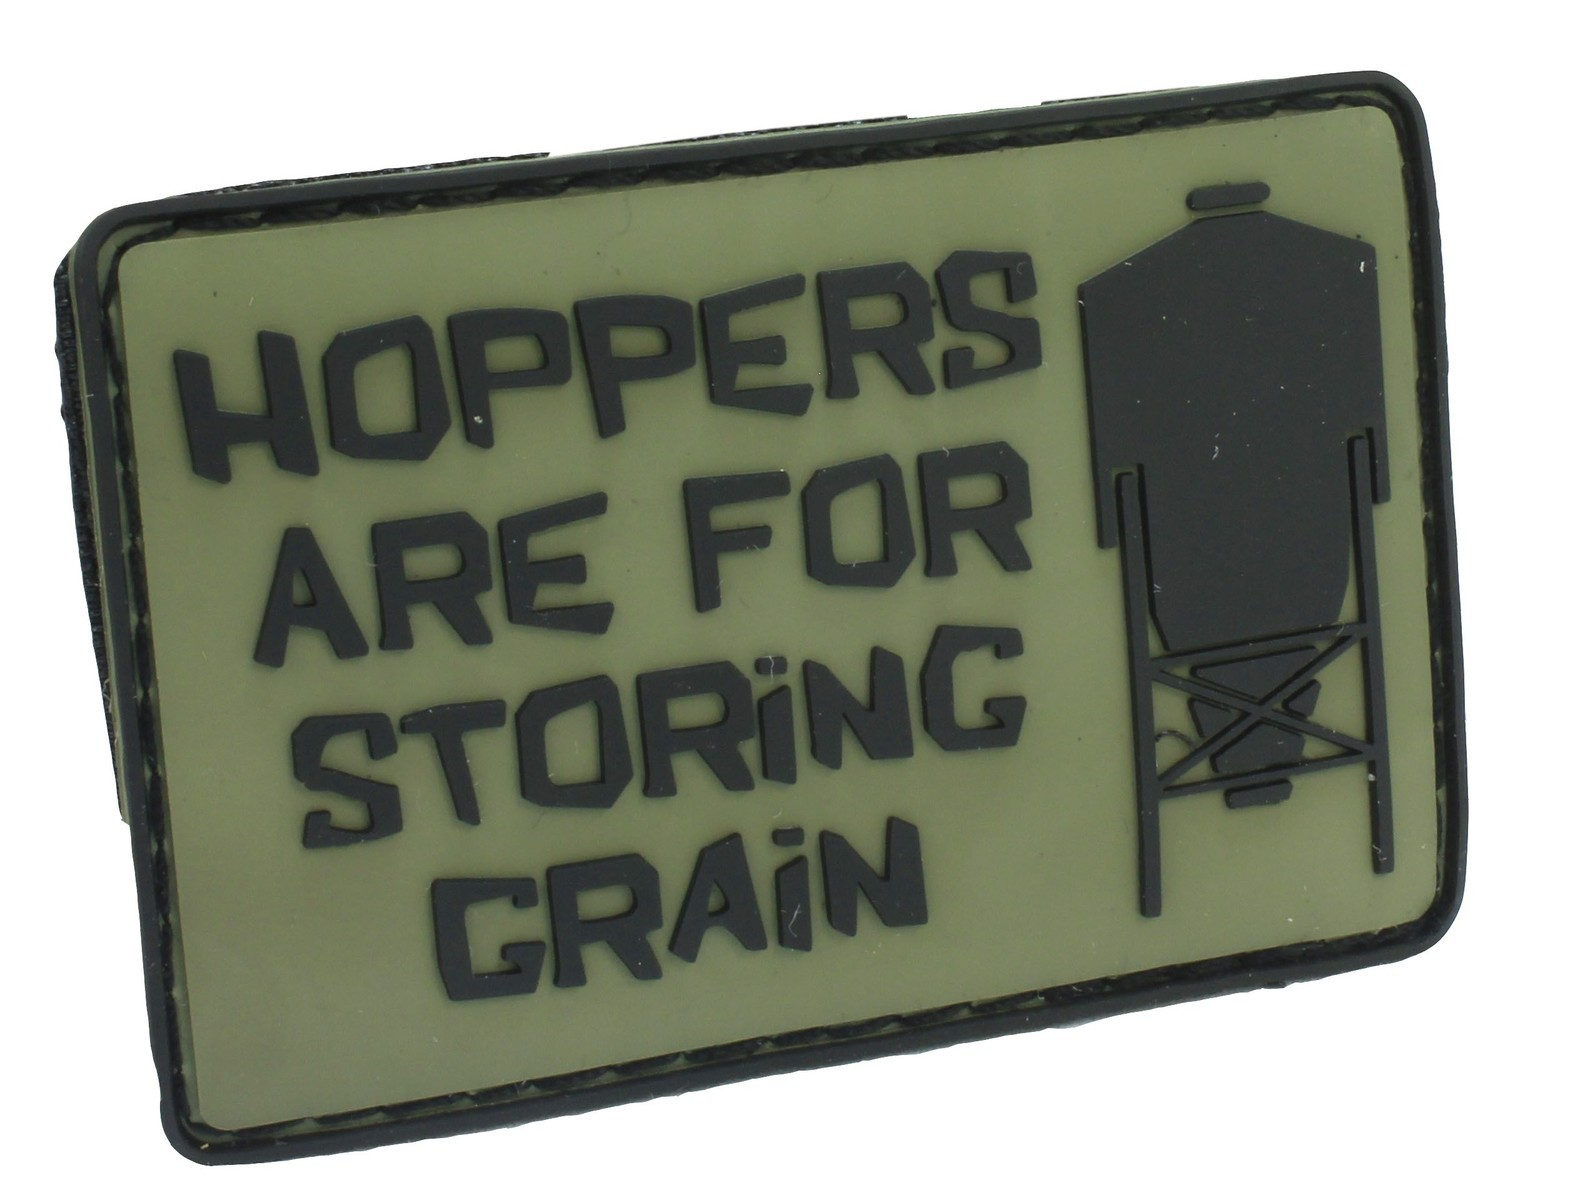 Patch Hoppers Are For Storing Grain (Green)